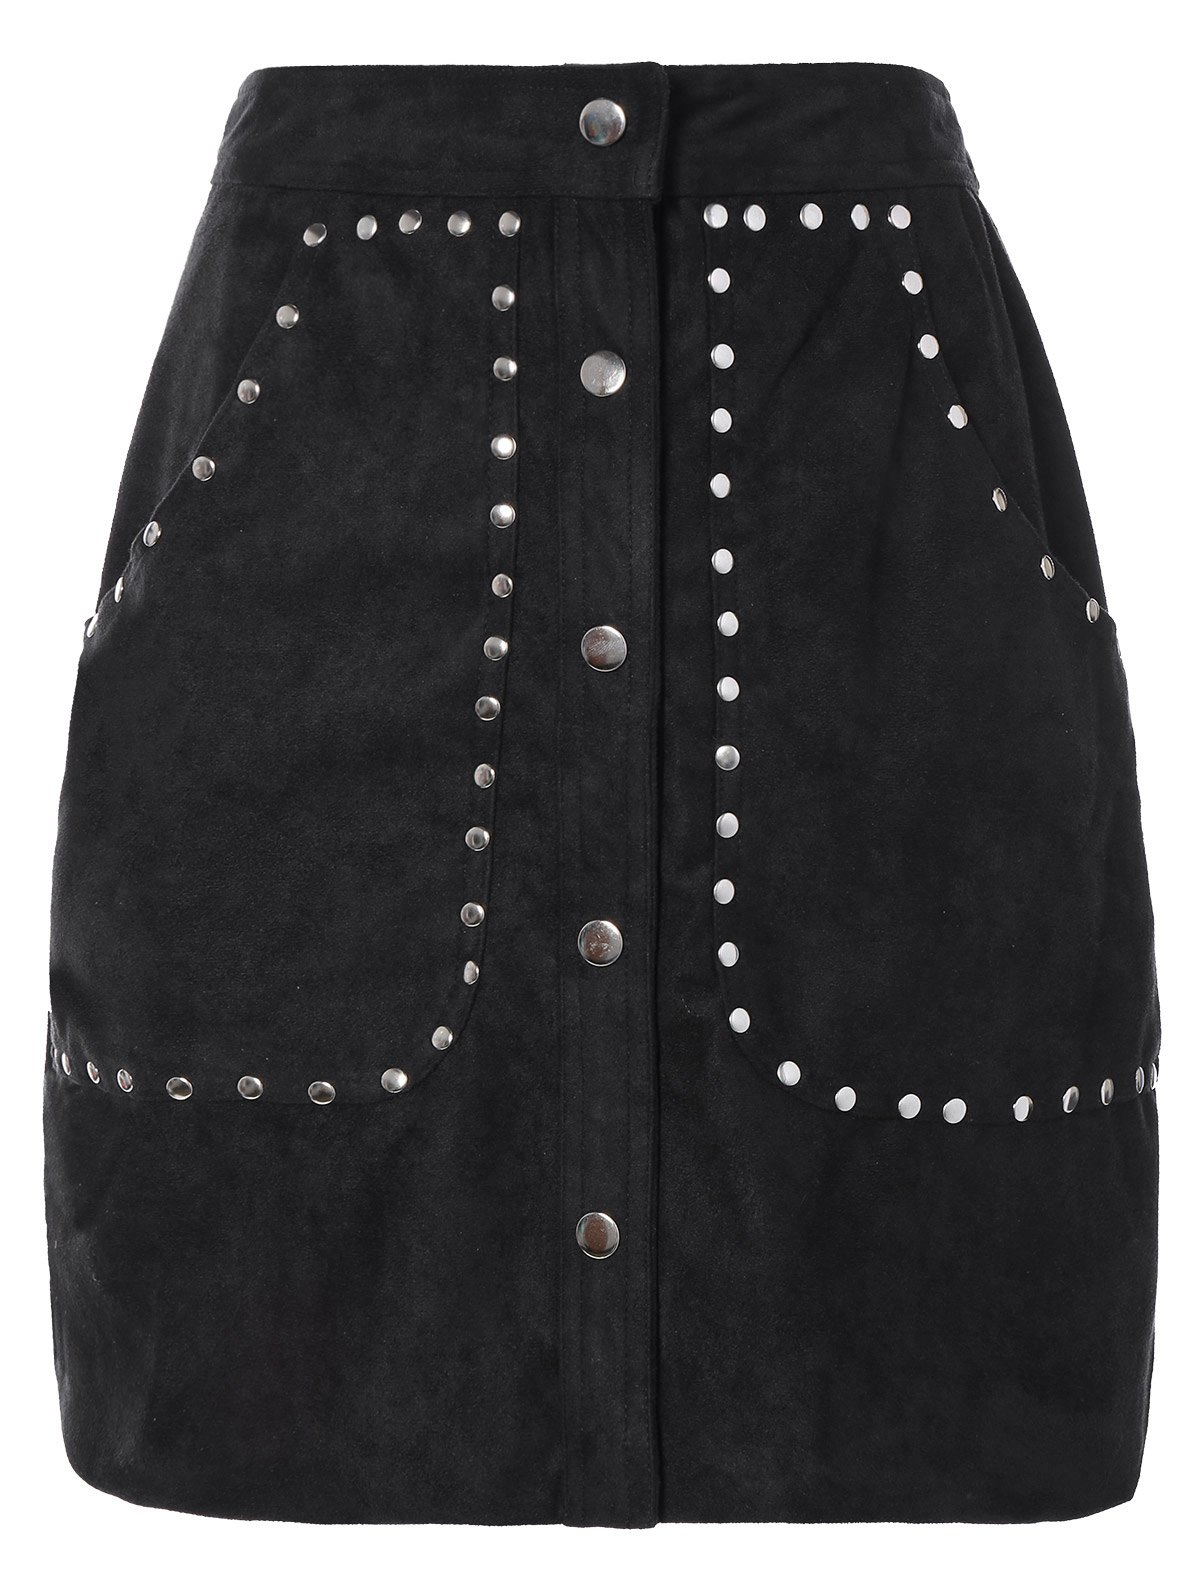 Fashion Rivet Sueded A Line Skirt